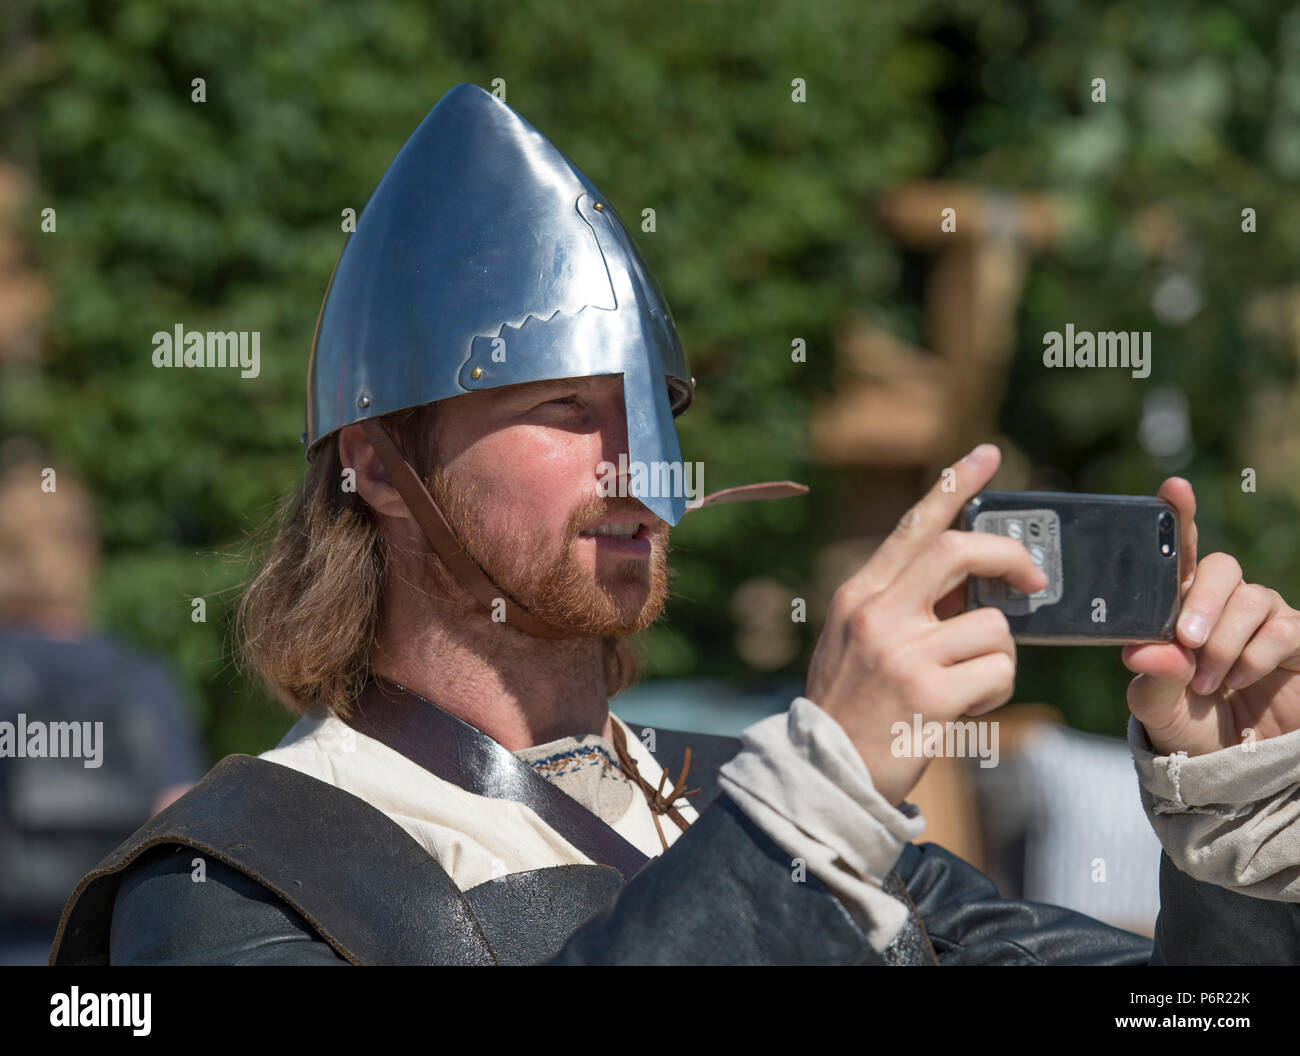 Hampton Court Palace, Surrey, UK. 2 July, 2018. The world's largest annual flower show, RHS Hampton Court Palace Flower Show supported by Viking Cruises, opens to the public from 5 - 8 July 2018. A group of authentic Vikings in traditional dress enjoy the Viking Cruises Nordic Lifestyle Garden, designed by Stephen Hall. Credit: Malcolm Park/Alamy Live News. Stock Photo